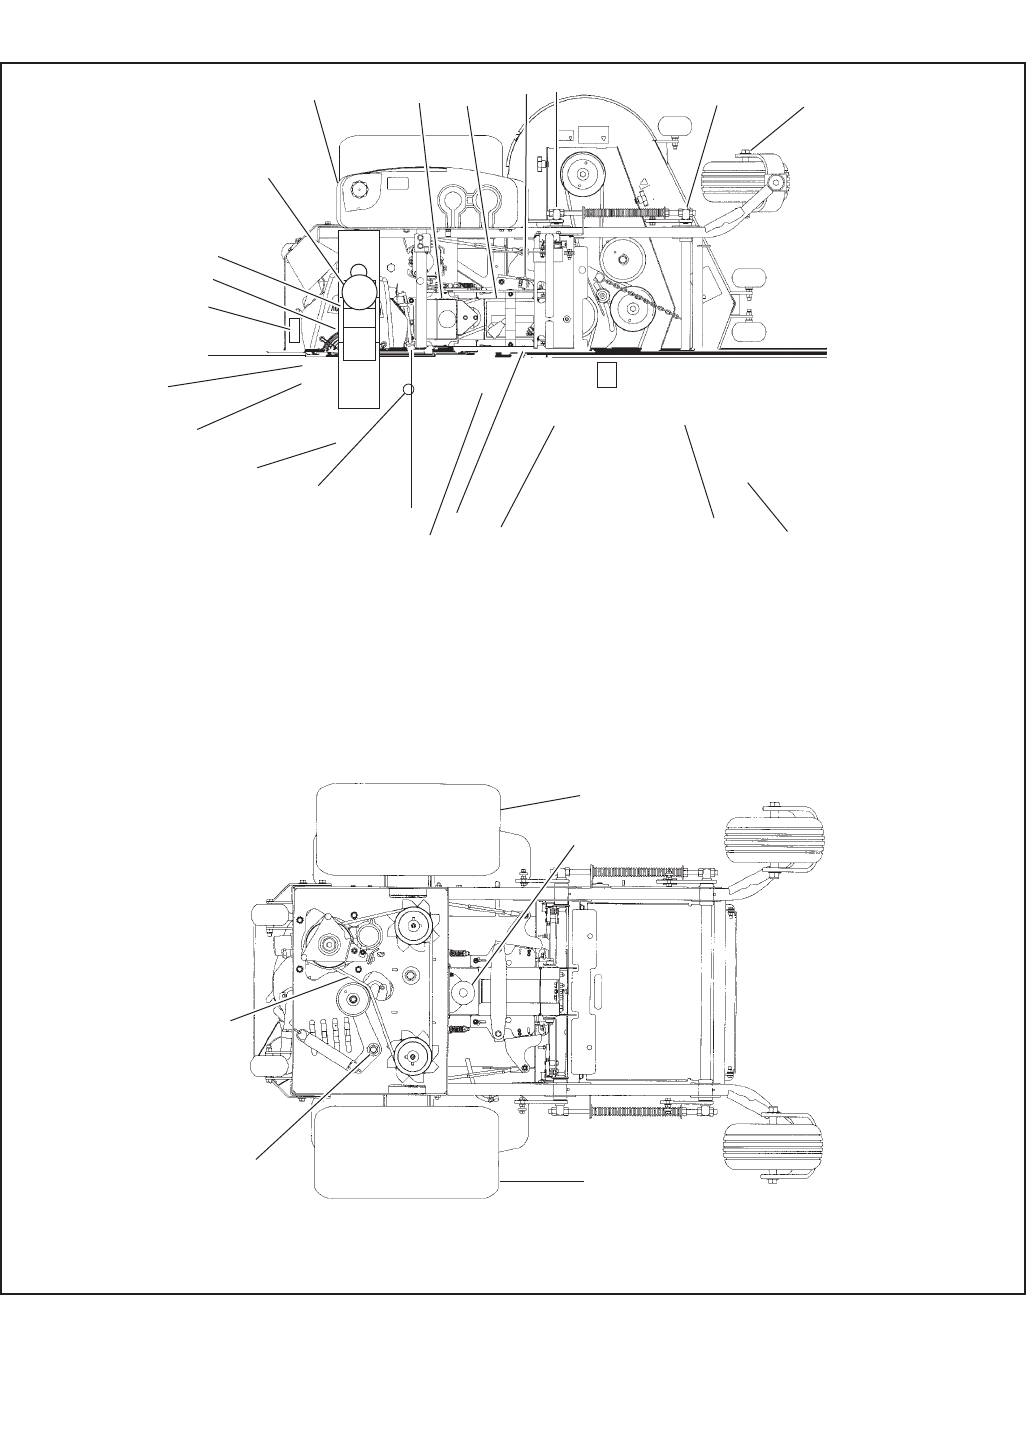 Sea Doo Jet Ski Parts Diagram moreover 1984 1991ClubCarGas besides Hustler Fastrack Wiring Diagram besides Hydraulics together with Polaris Scrambler Wiring Diagram. on kawasaki wiring schematics